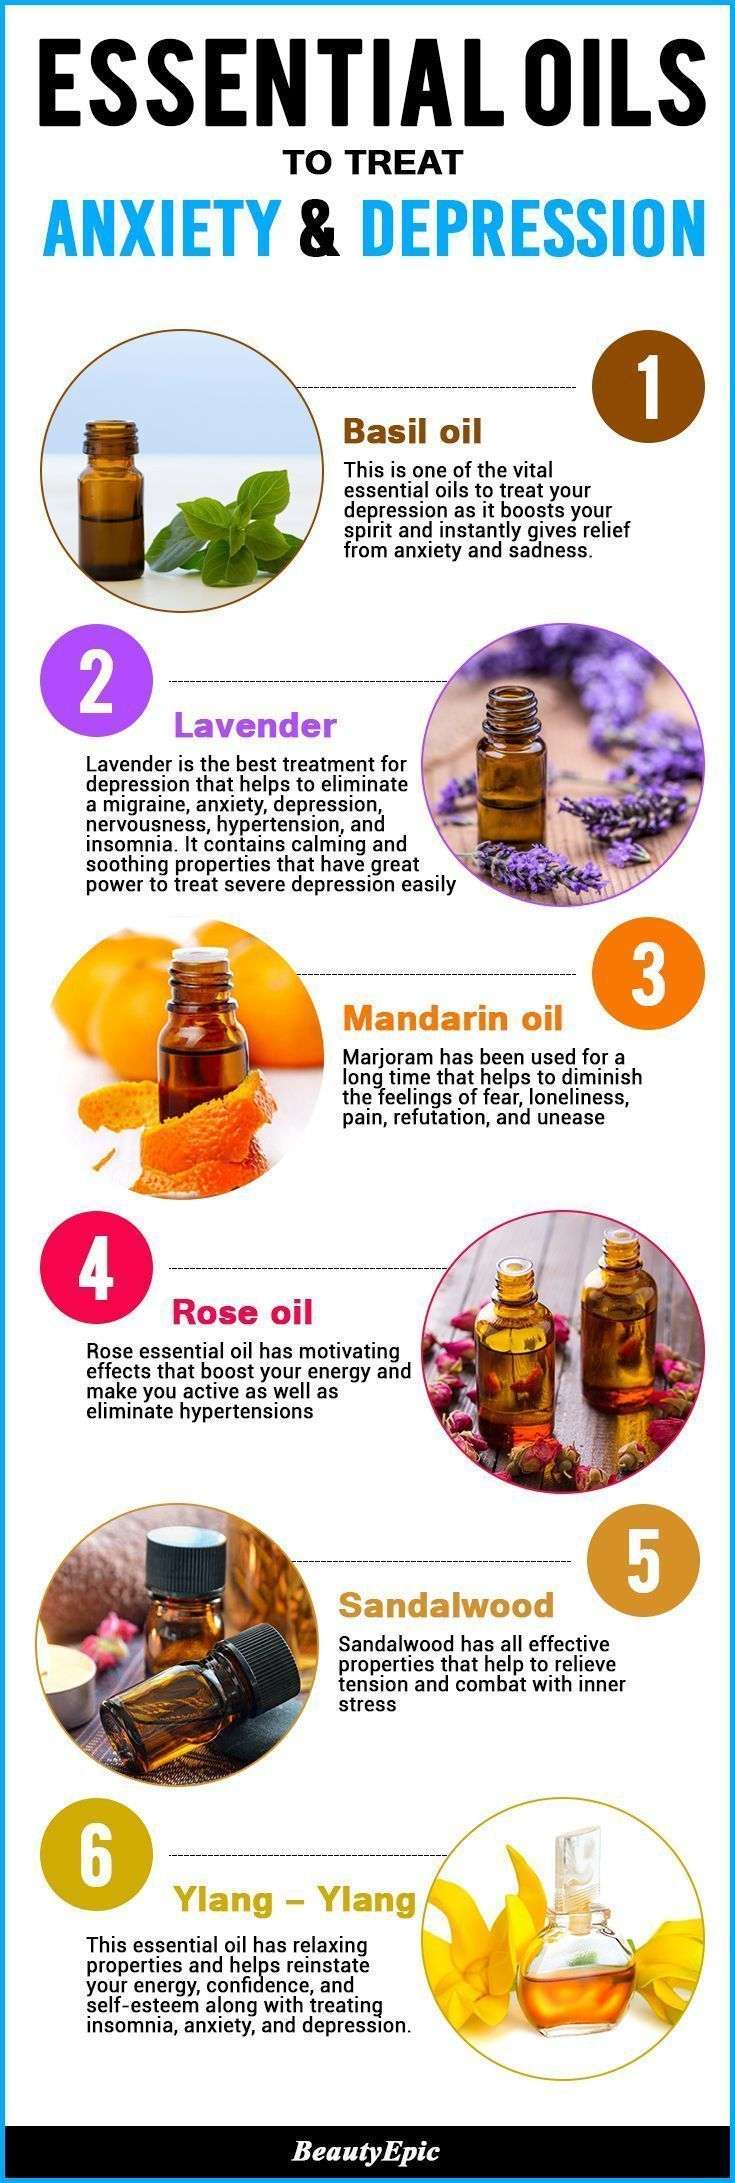 Essential Oils For Anxiety And Depression Benefits And How To Use